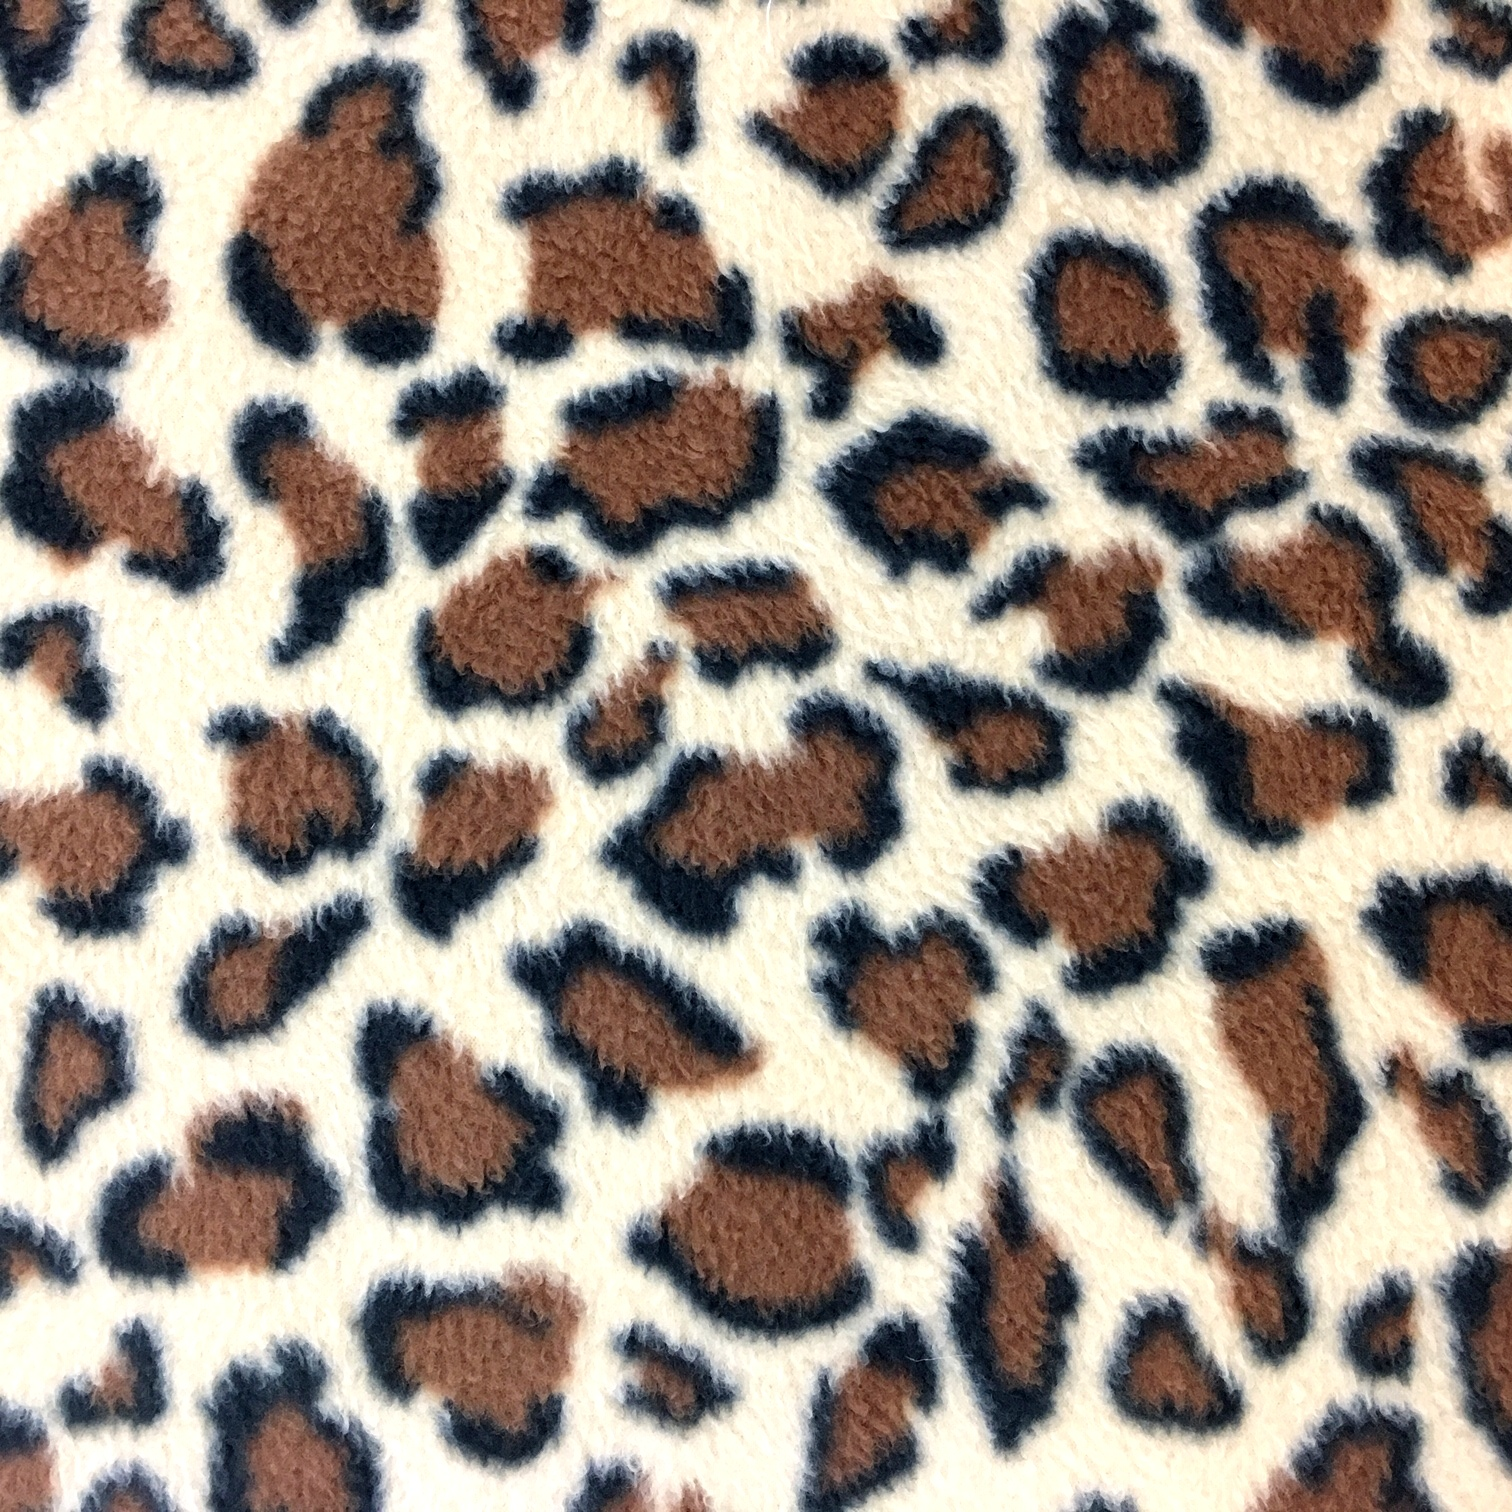 Printed Fleece Fabric - Leopard